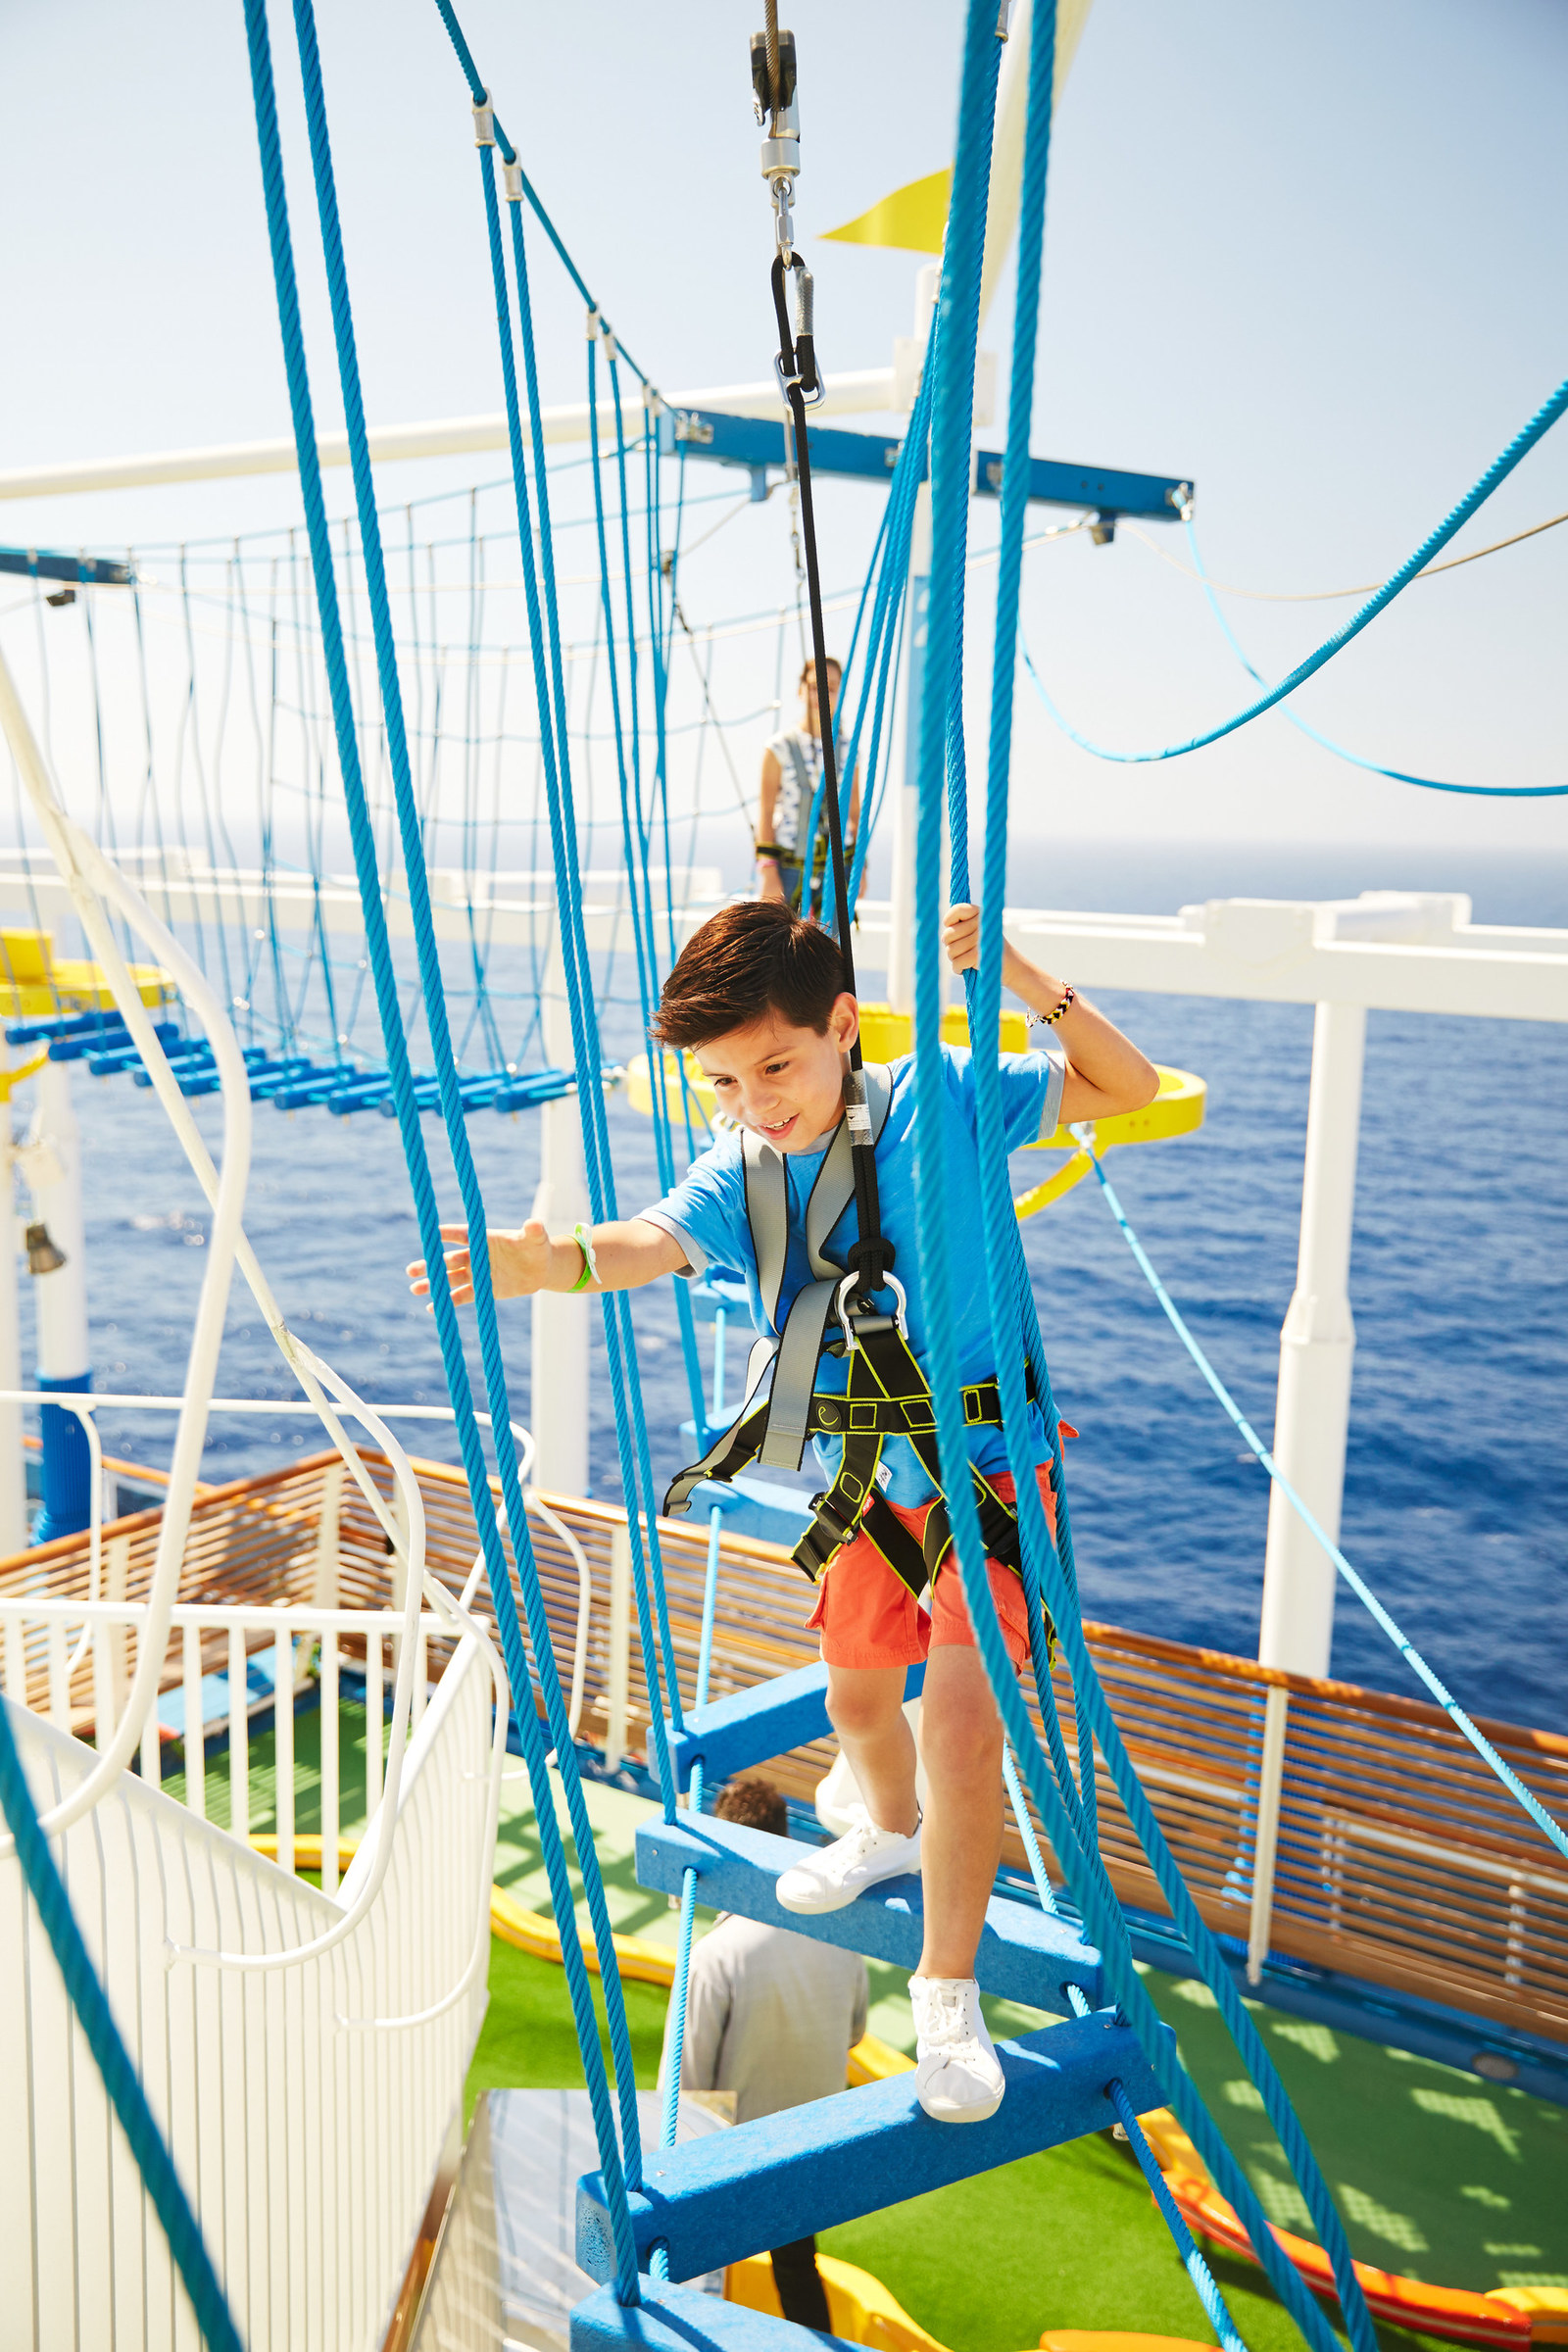 For a Great Family Vacation Take Your Kids on a Cruise